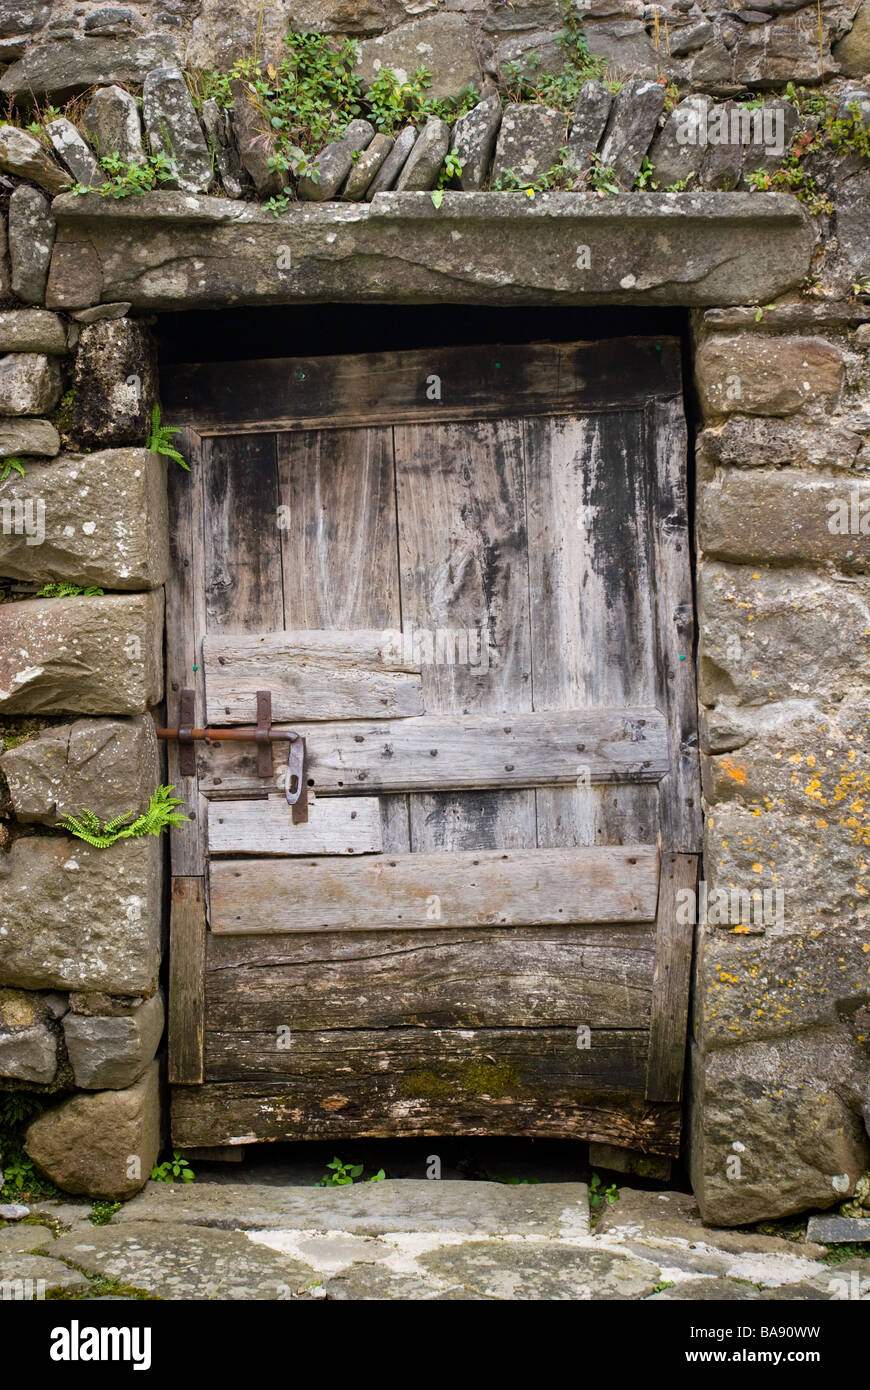 photography ancient wooden door with rusted bolt - Stock Image